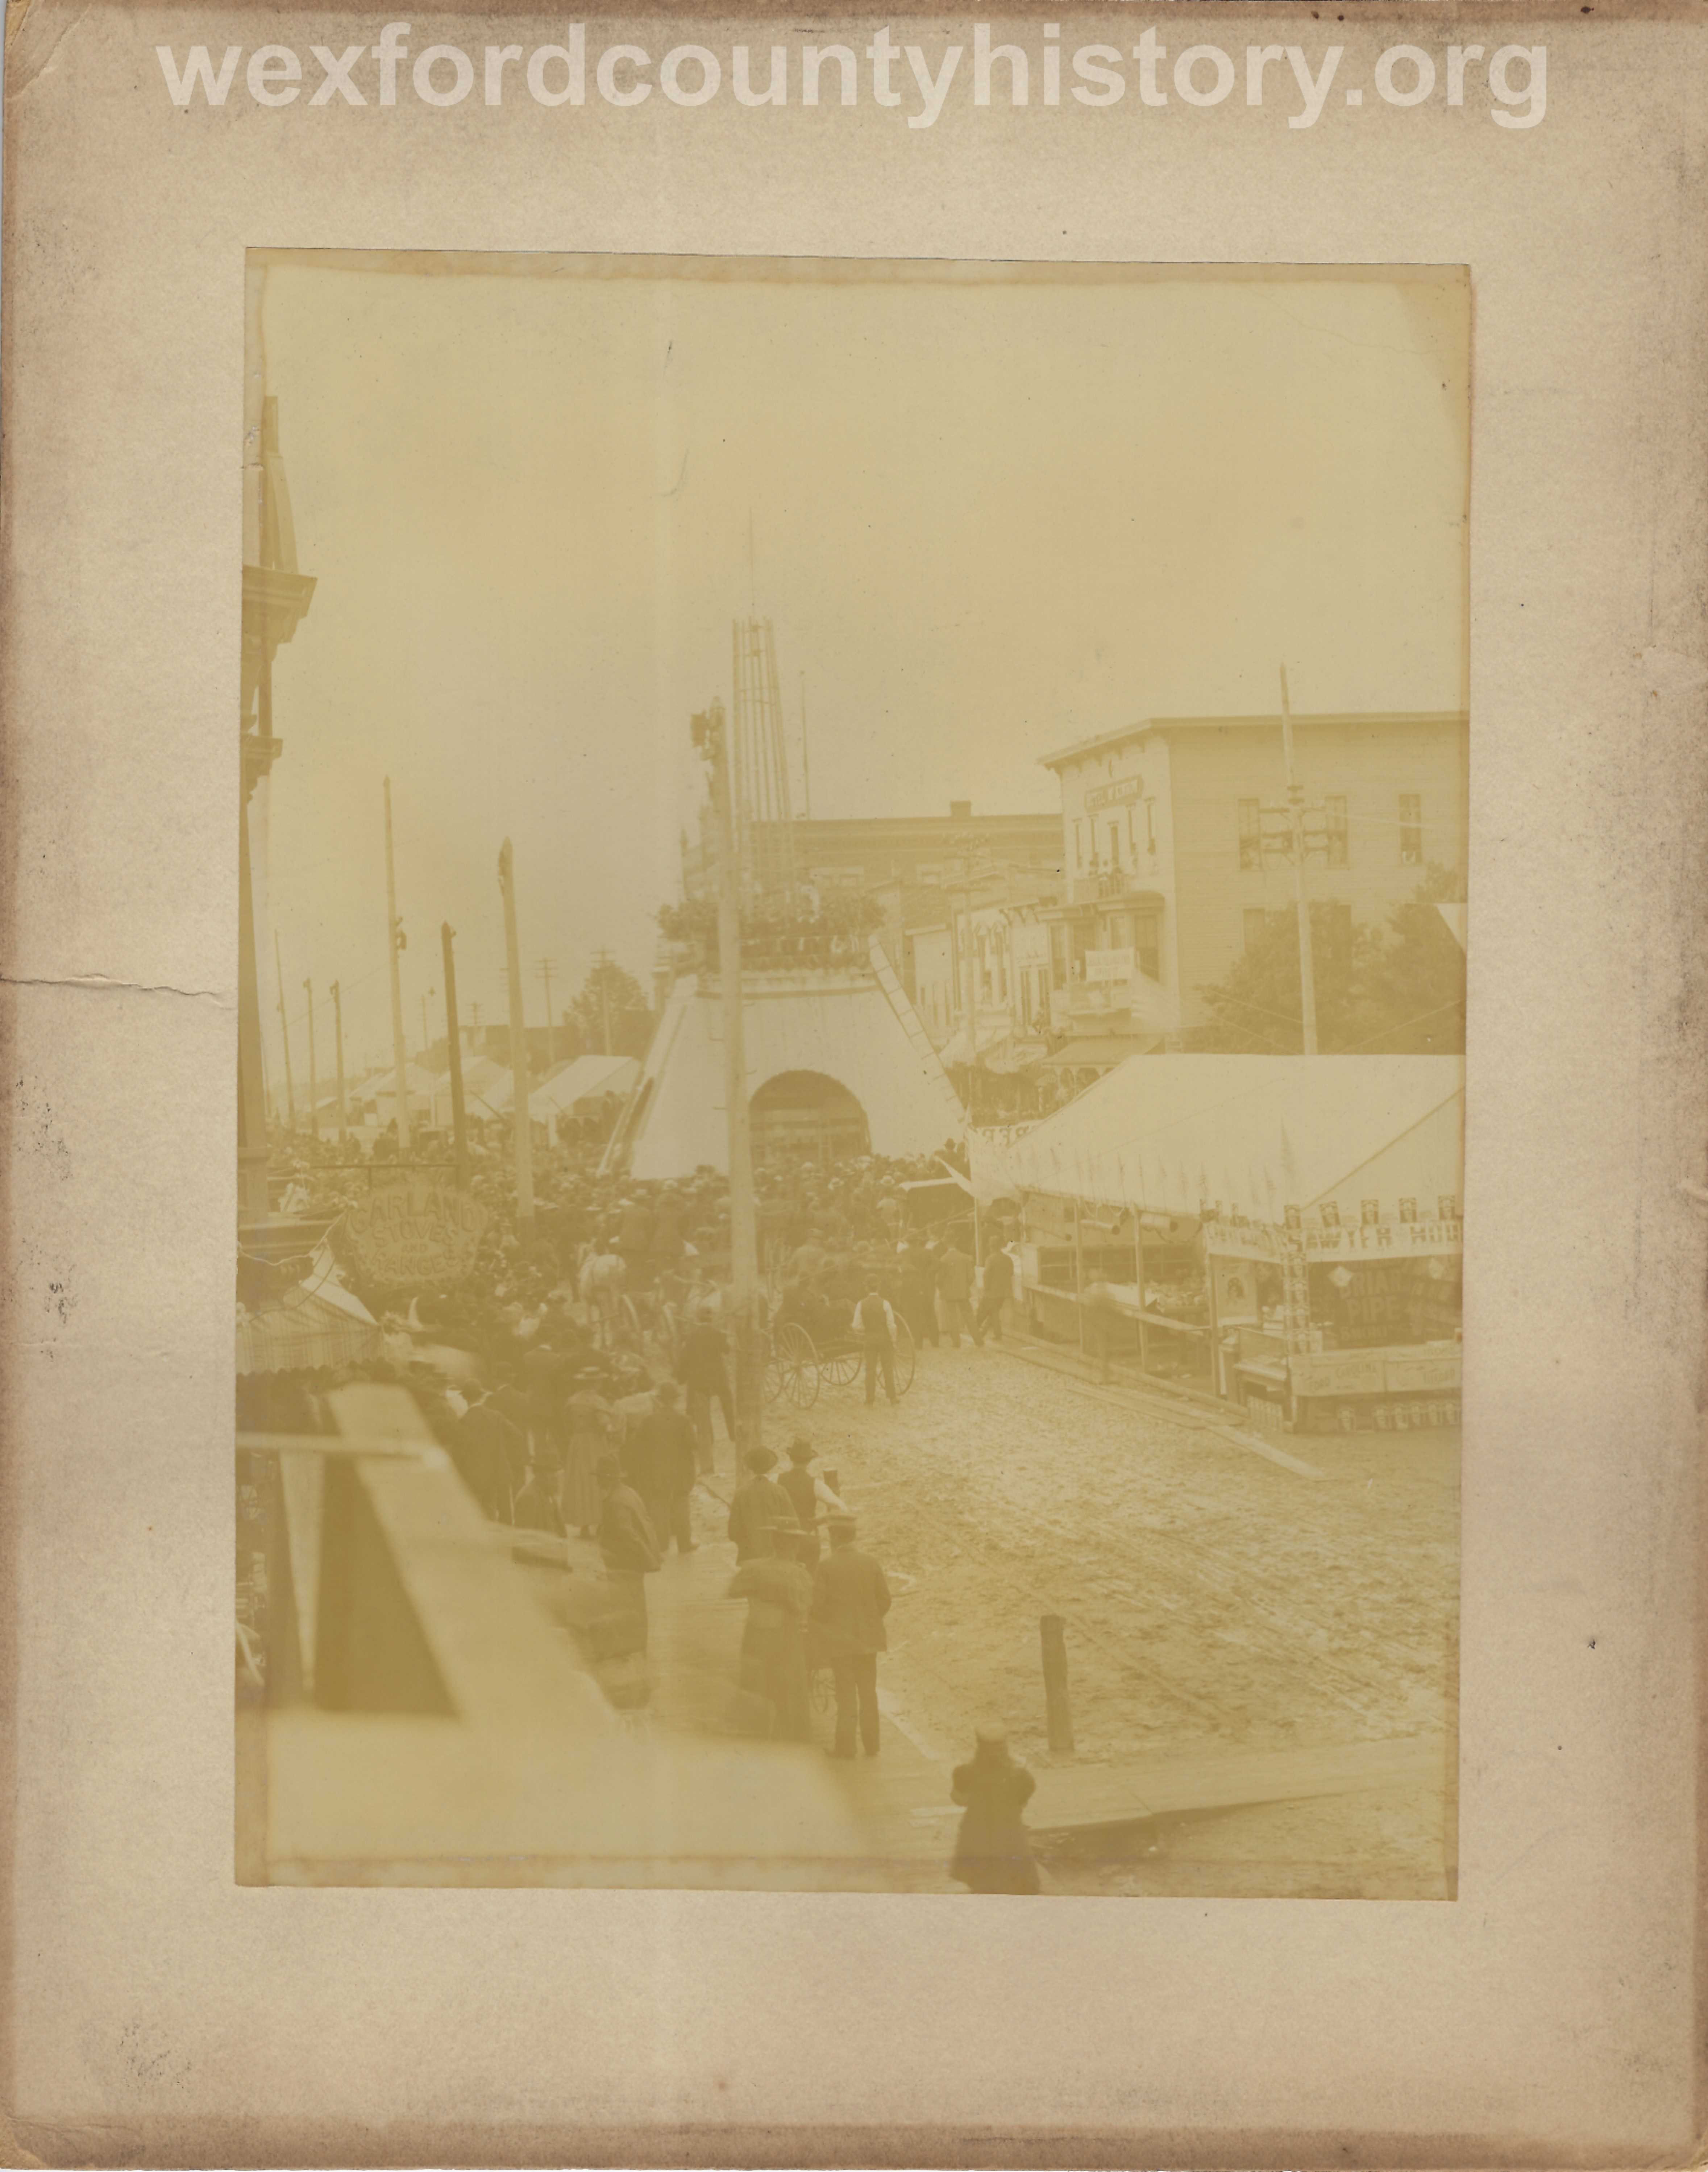 Cadillac-Parade-Free-Fair-on-the-corner-of-Harris-and-Mitchell-1897-09-15-4